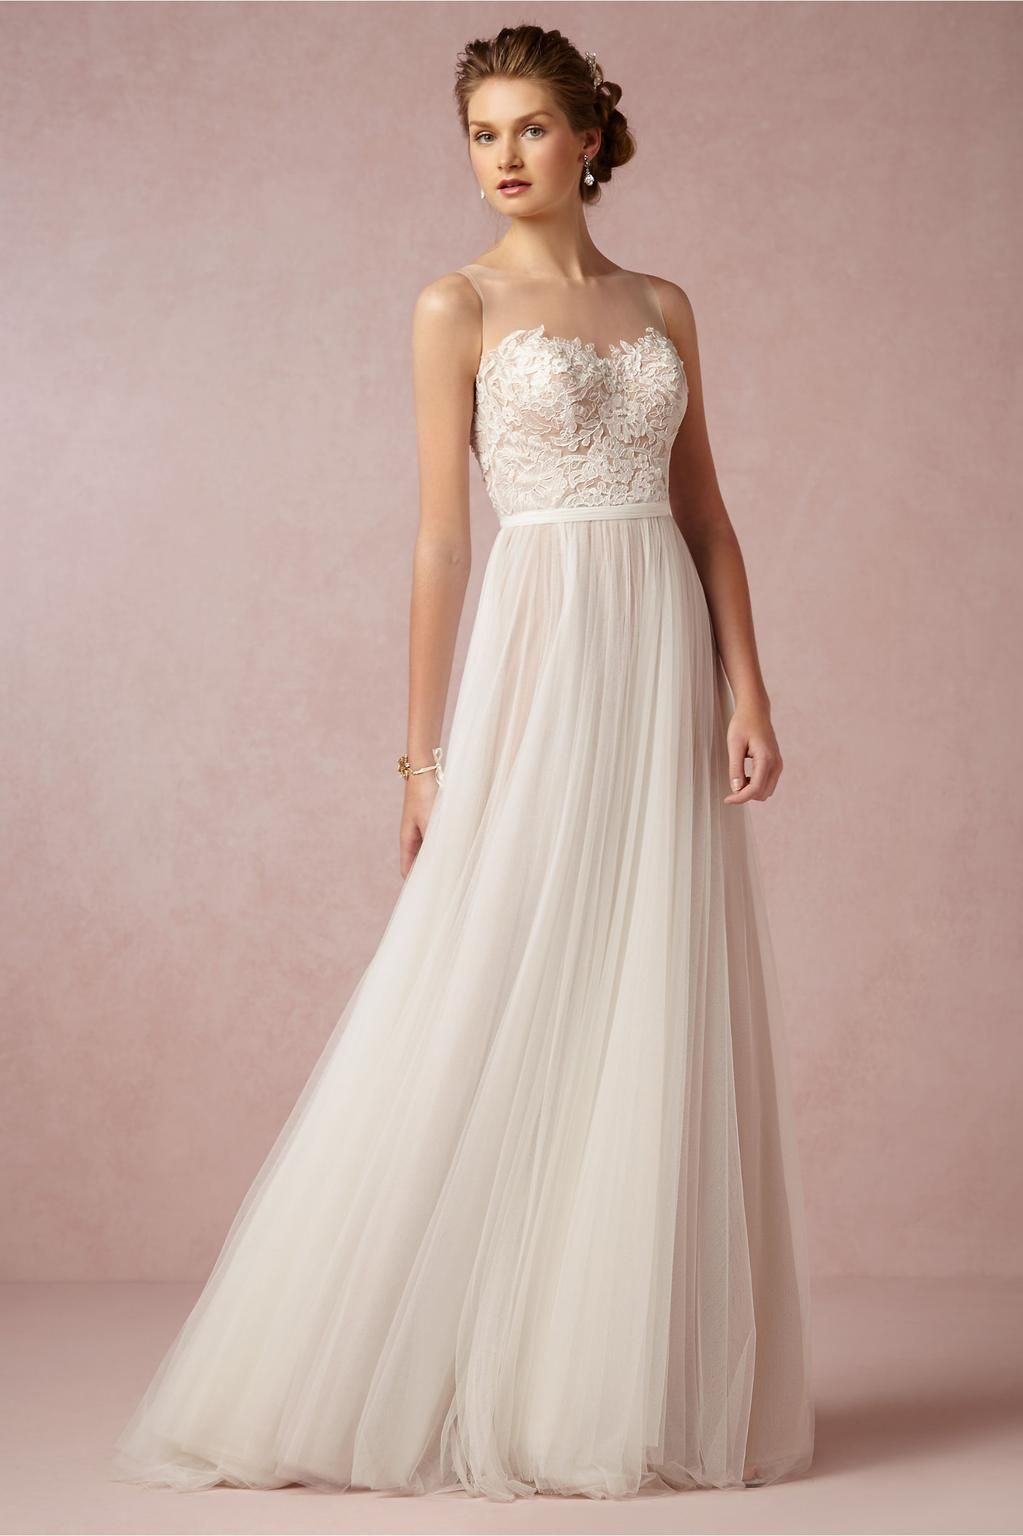 00a2363a84d Catherine Deane In Perpetuity Camisole Top Anika Tulle Skirt - Bhldn ...